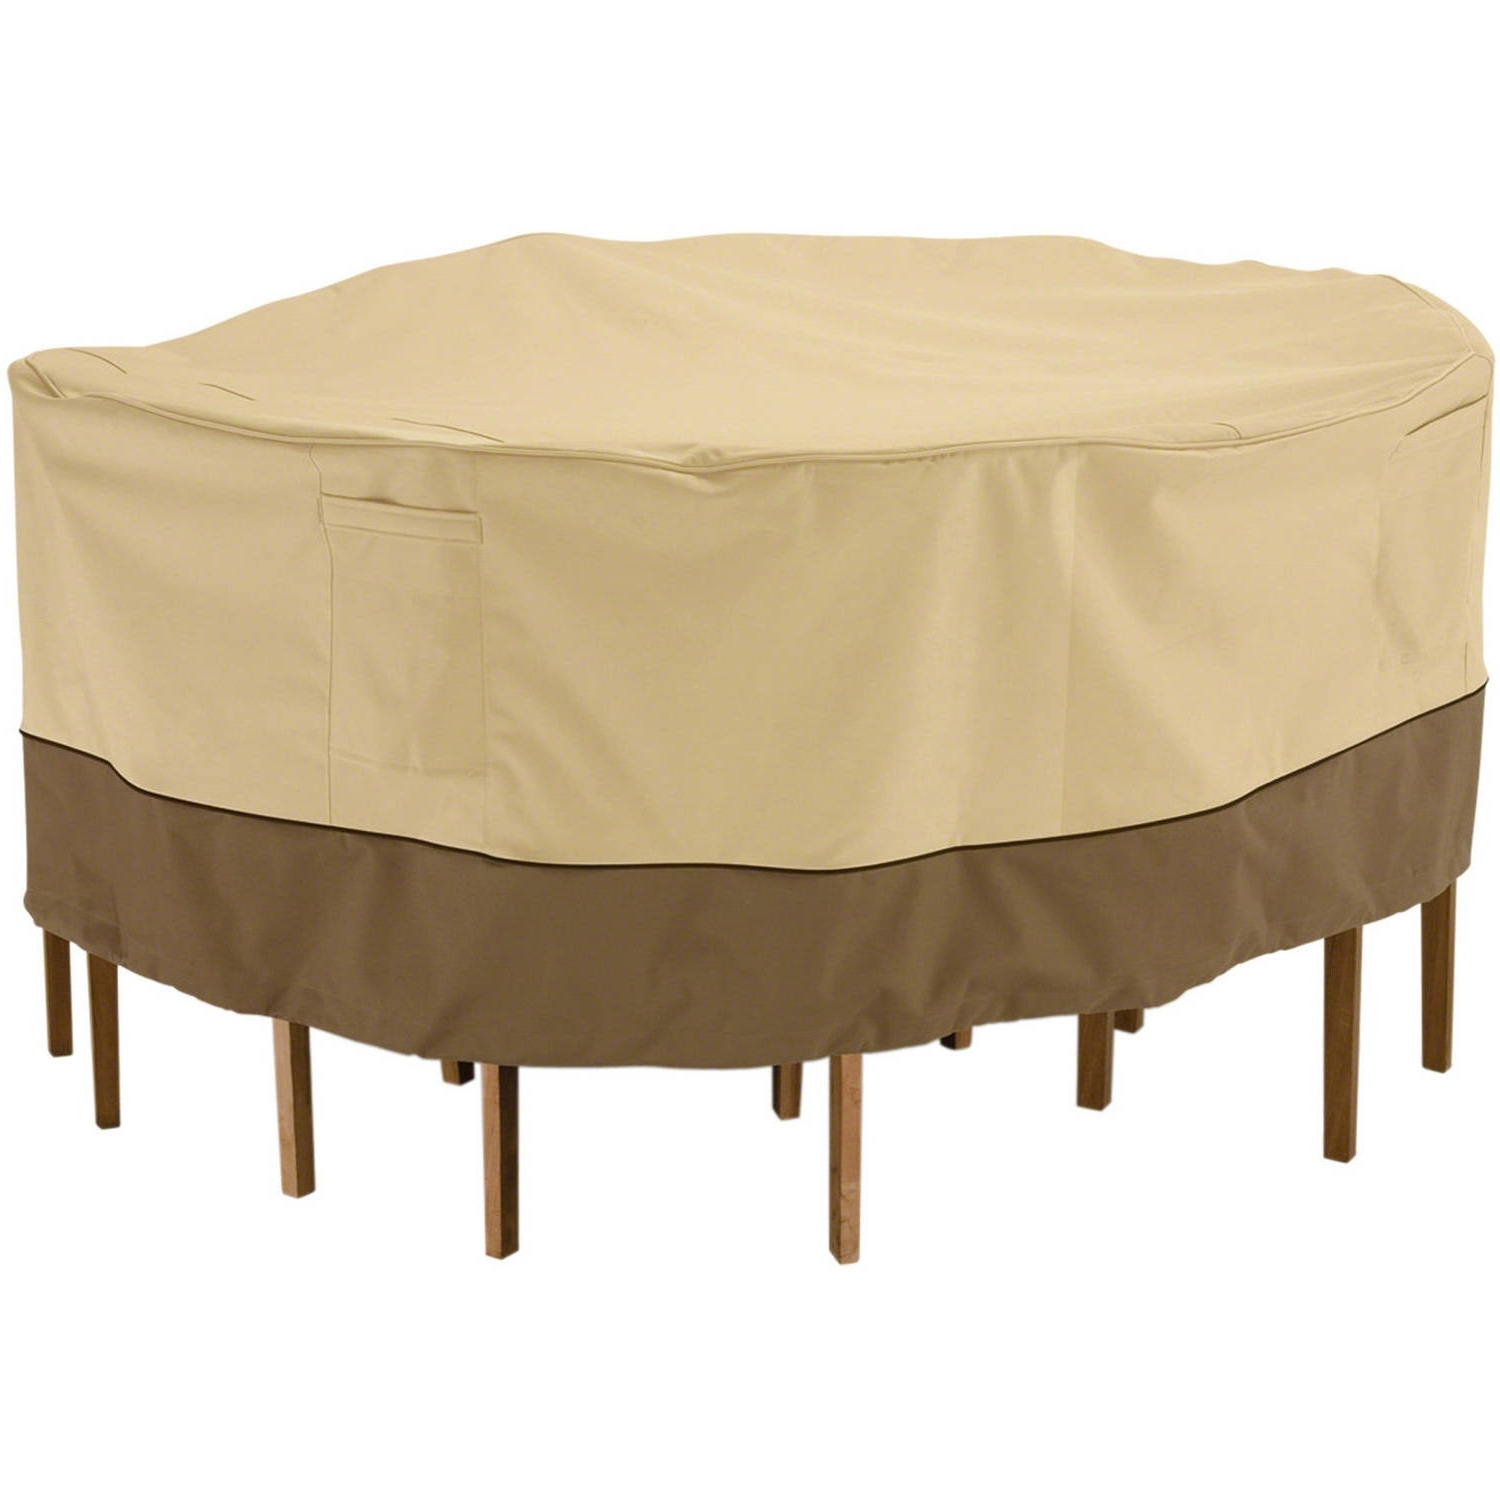 Most Popular Patio Conversation Sets With Covers Inside Outdoor Furniture Covers (View 11 of 20)